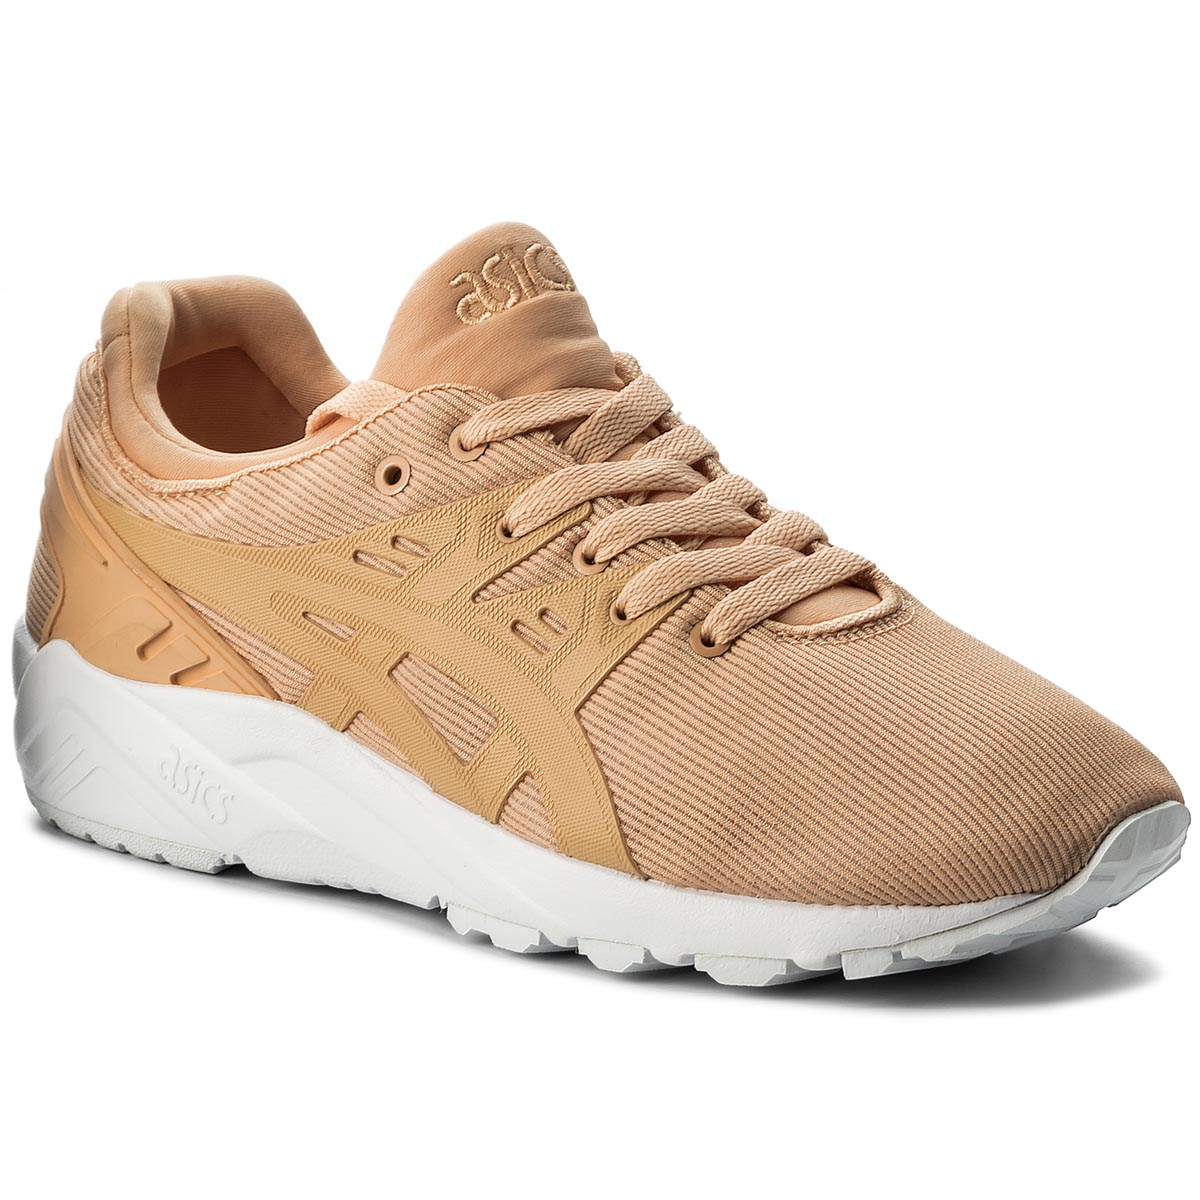 Sneakers ASICS - Gel-Kayano Trainer Evo H823N Apricot Ice/Apricot Ice 9595